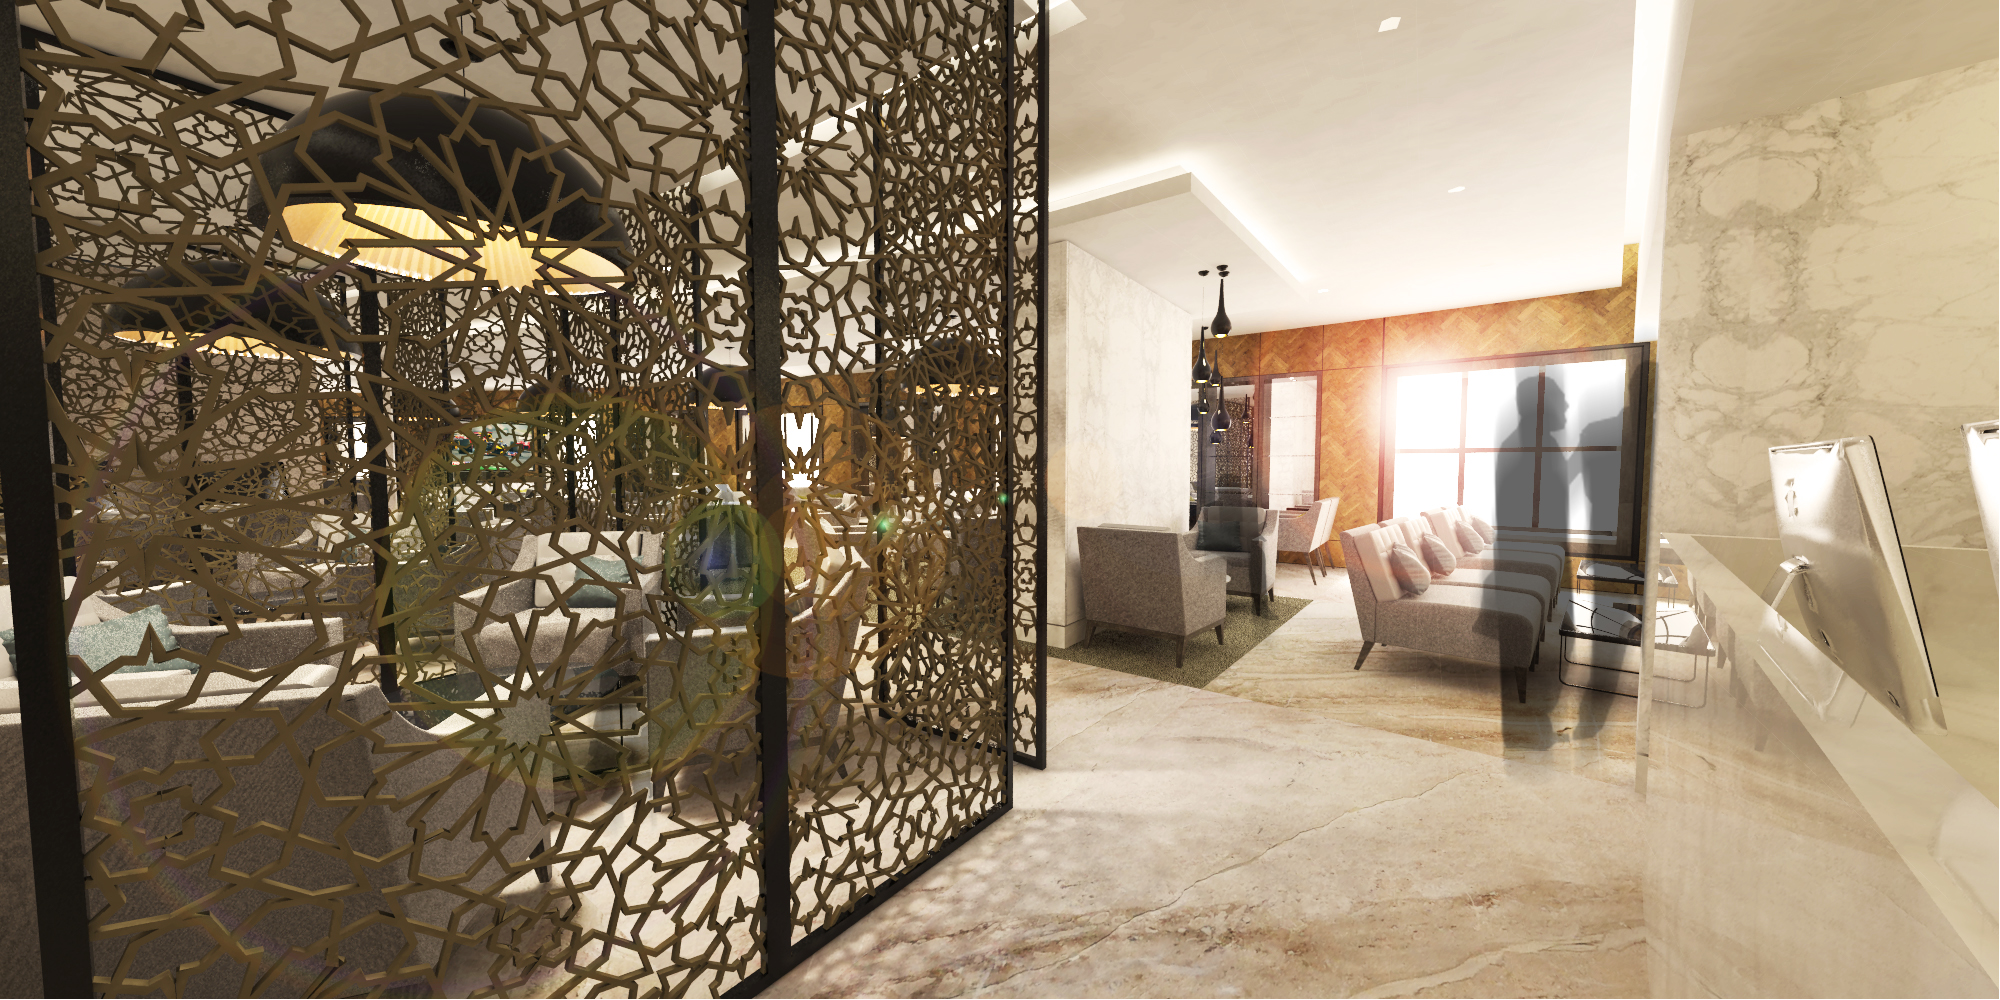 Hilton Executive Lounge Entry